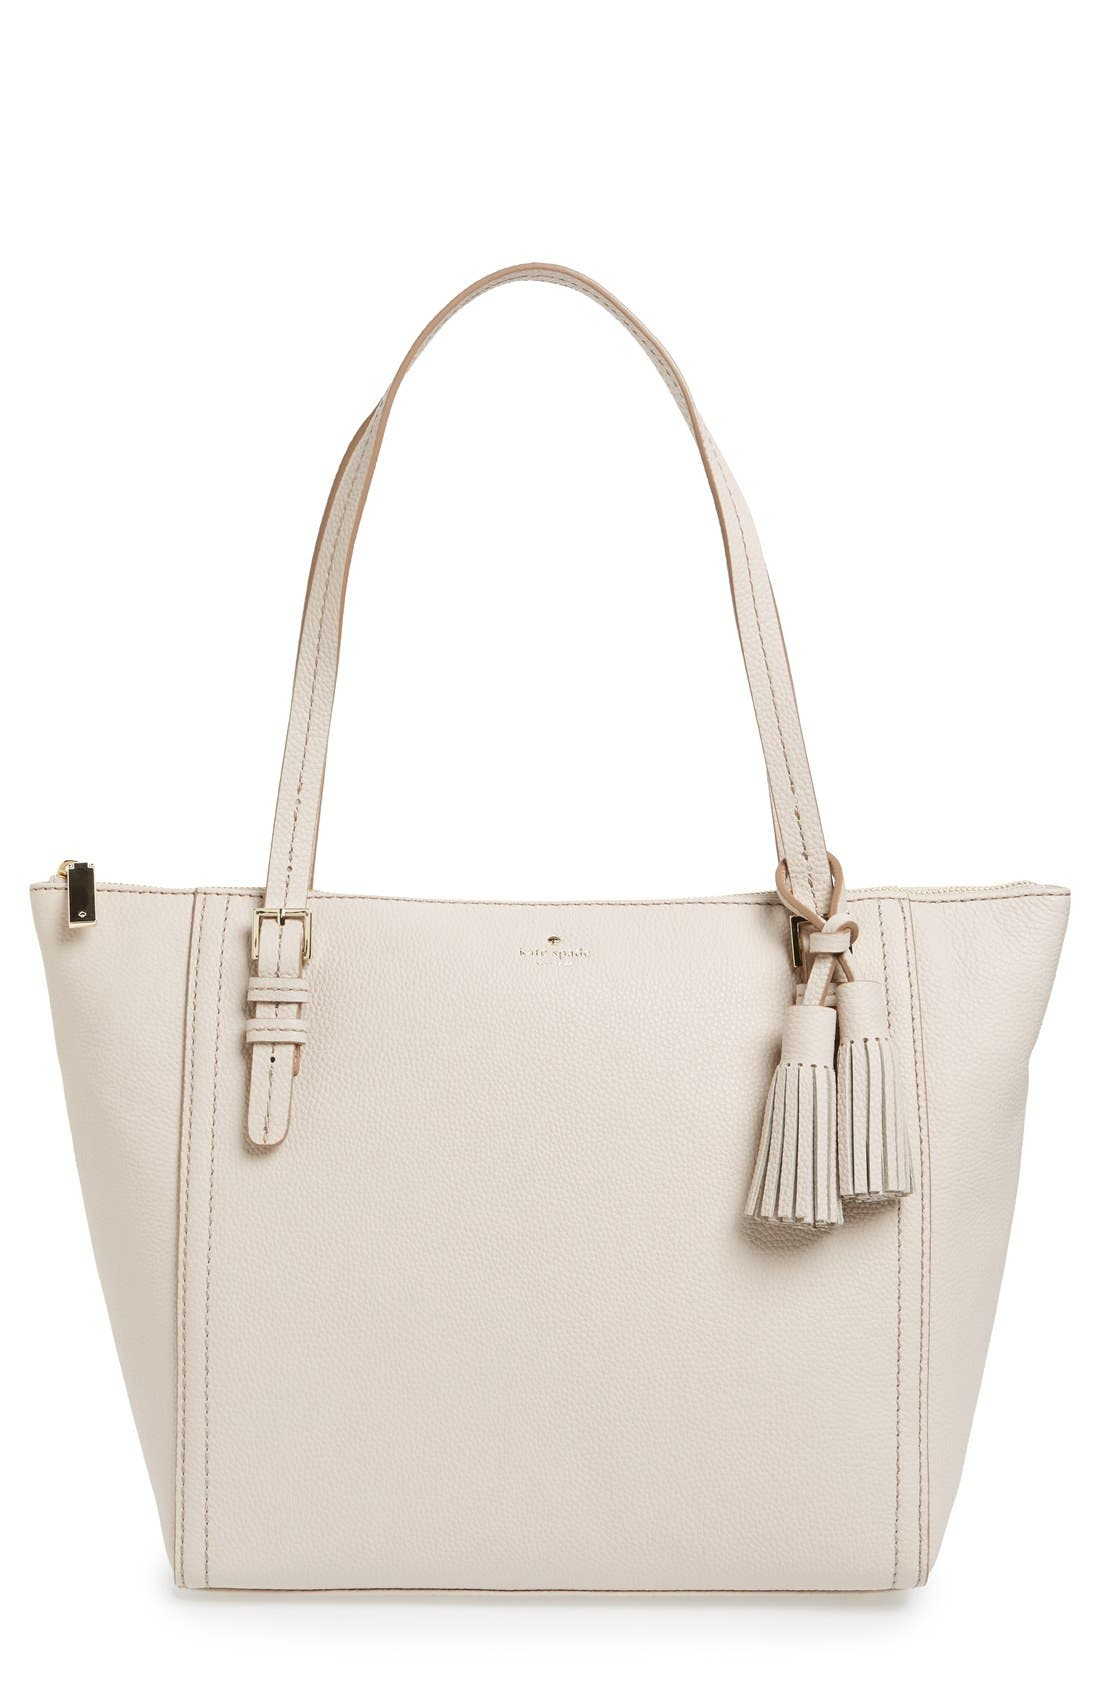 Main Image - kate spade new york orchard street - maya leather tote